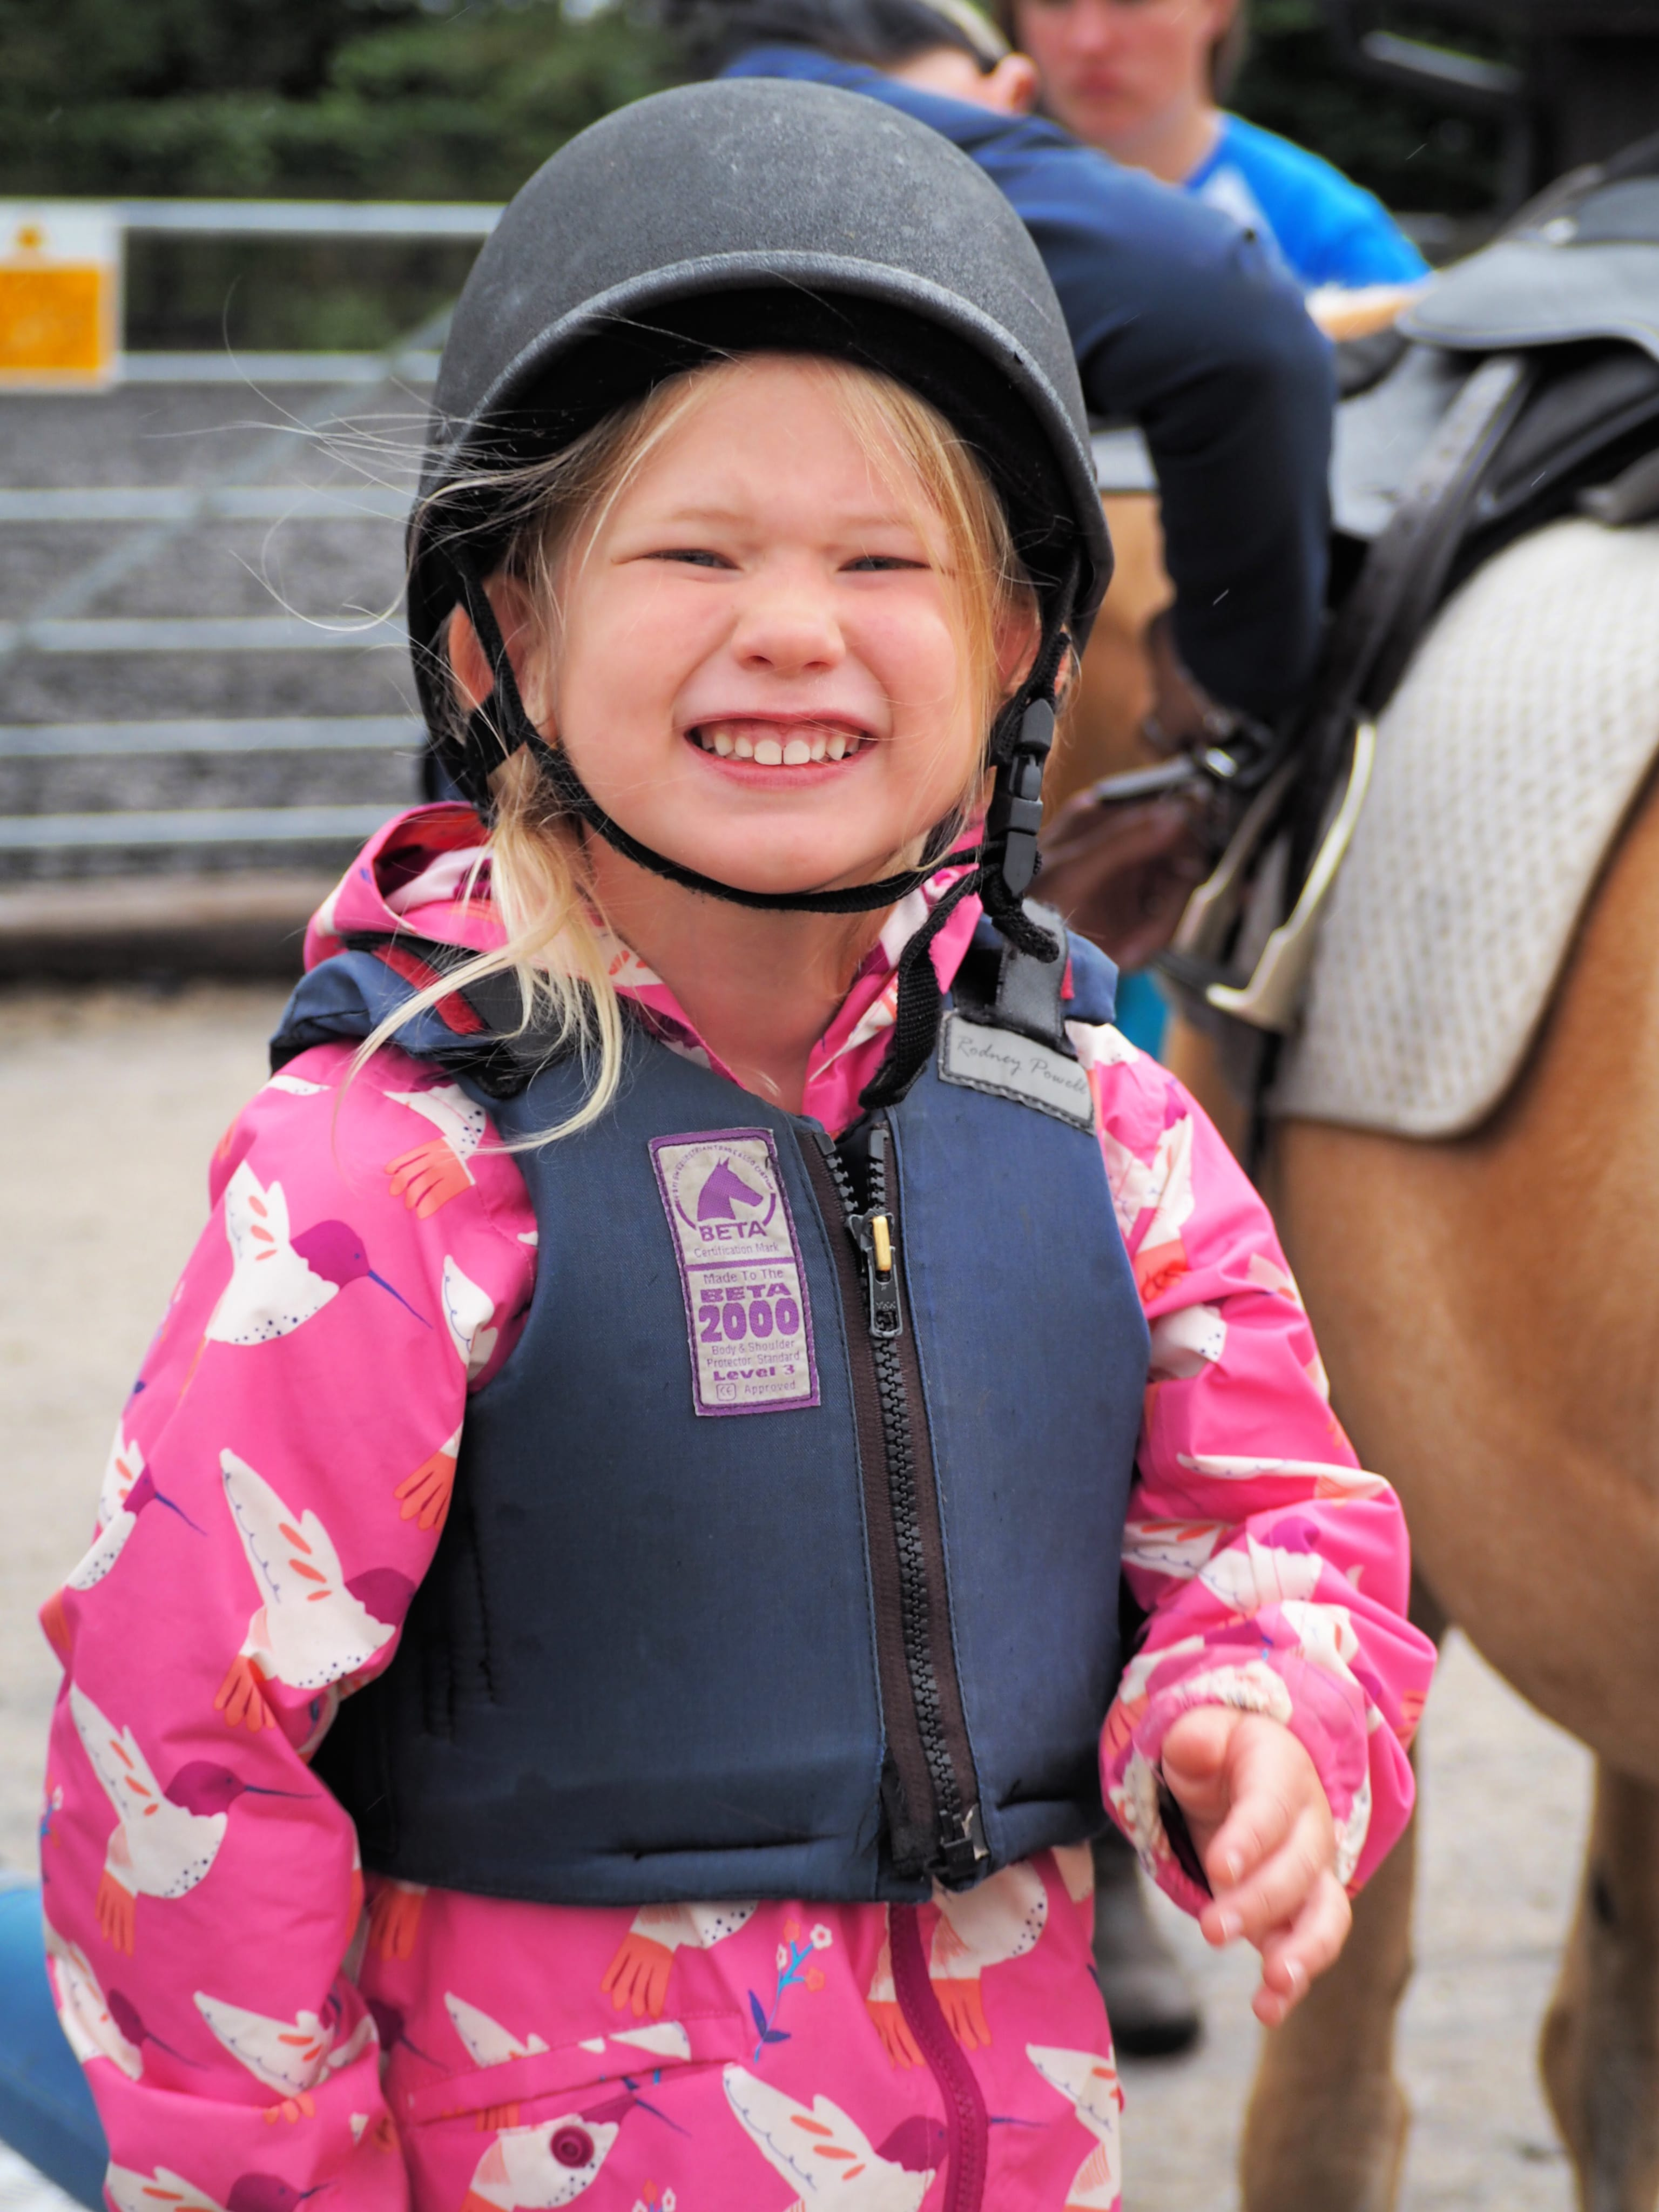 Aria very excited about her riding lesson